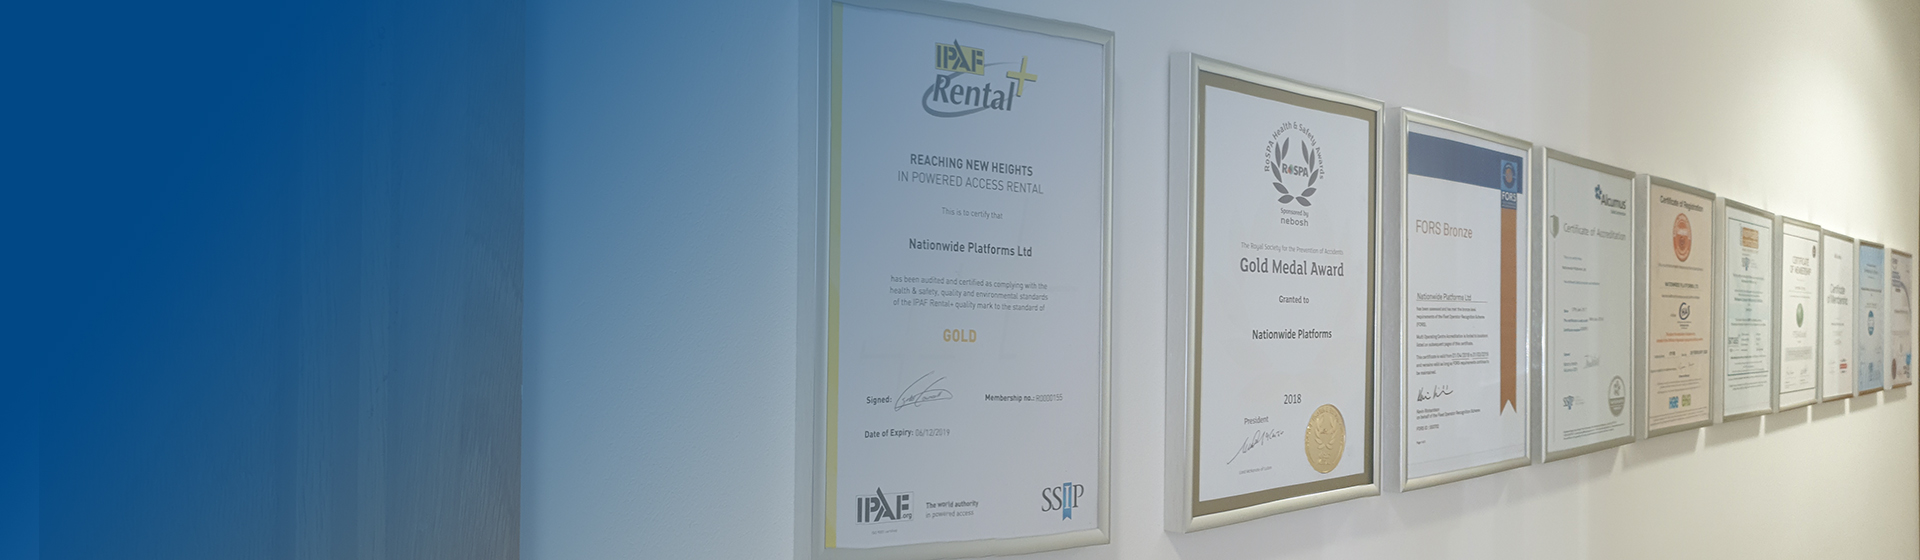 IPAF Rental+ enforces the Heightening of Standards in Powered Access Rental